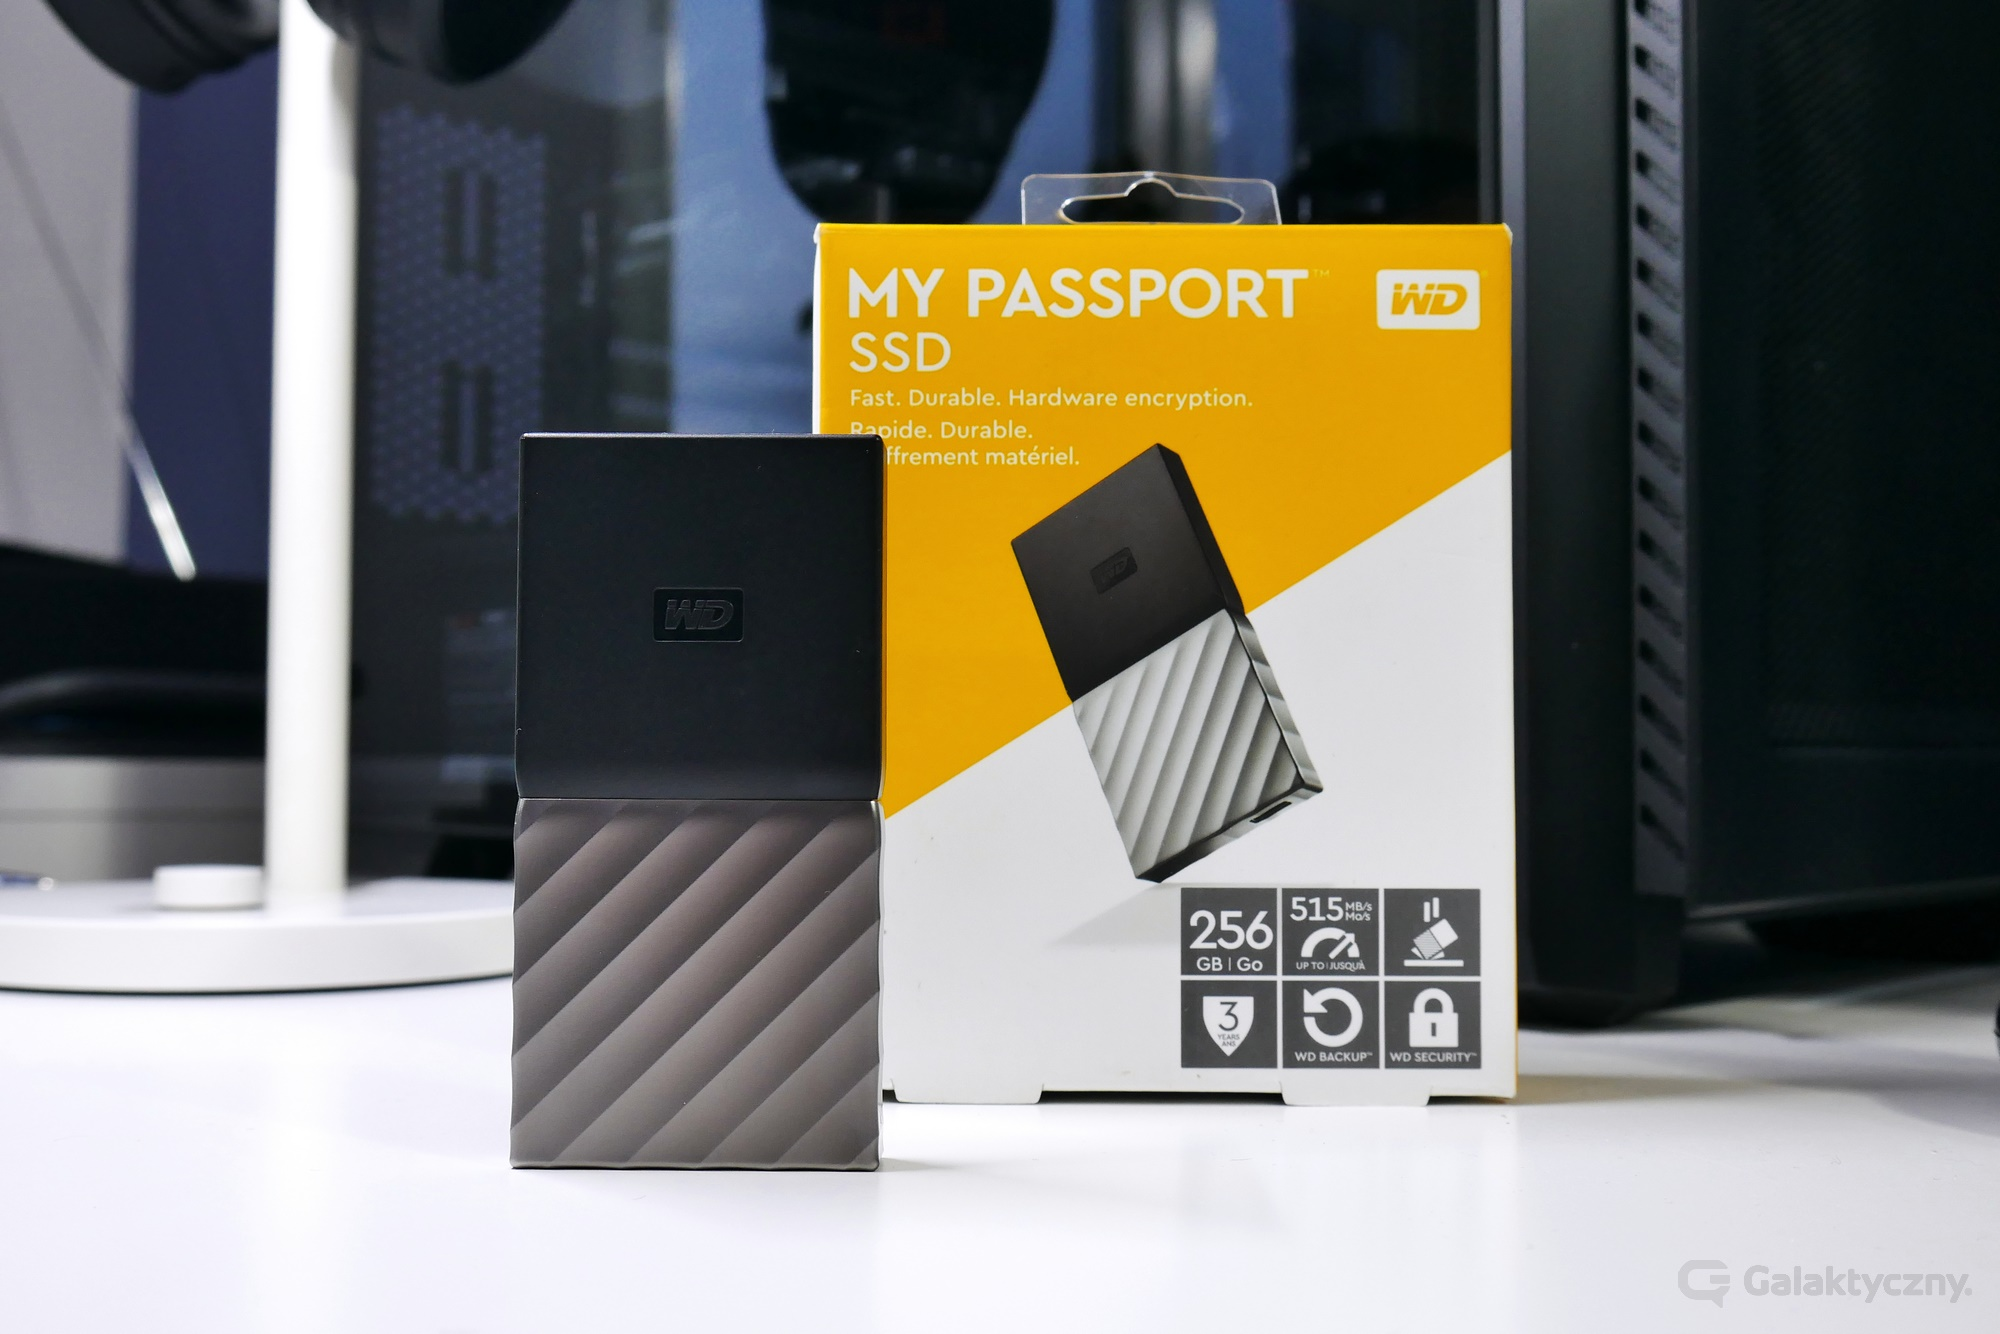 WD My Passport SSD 256 GB